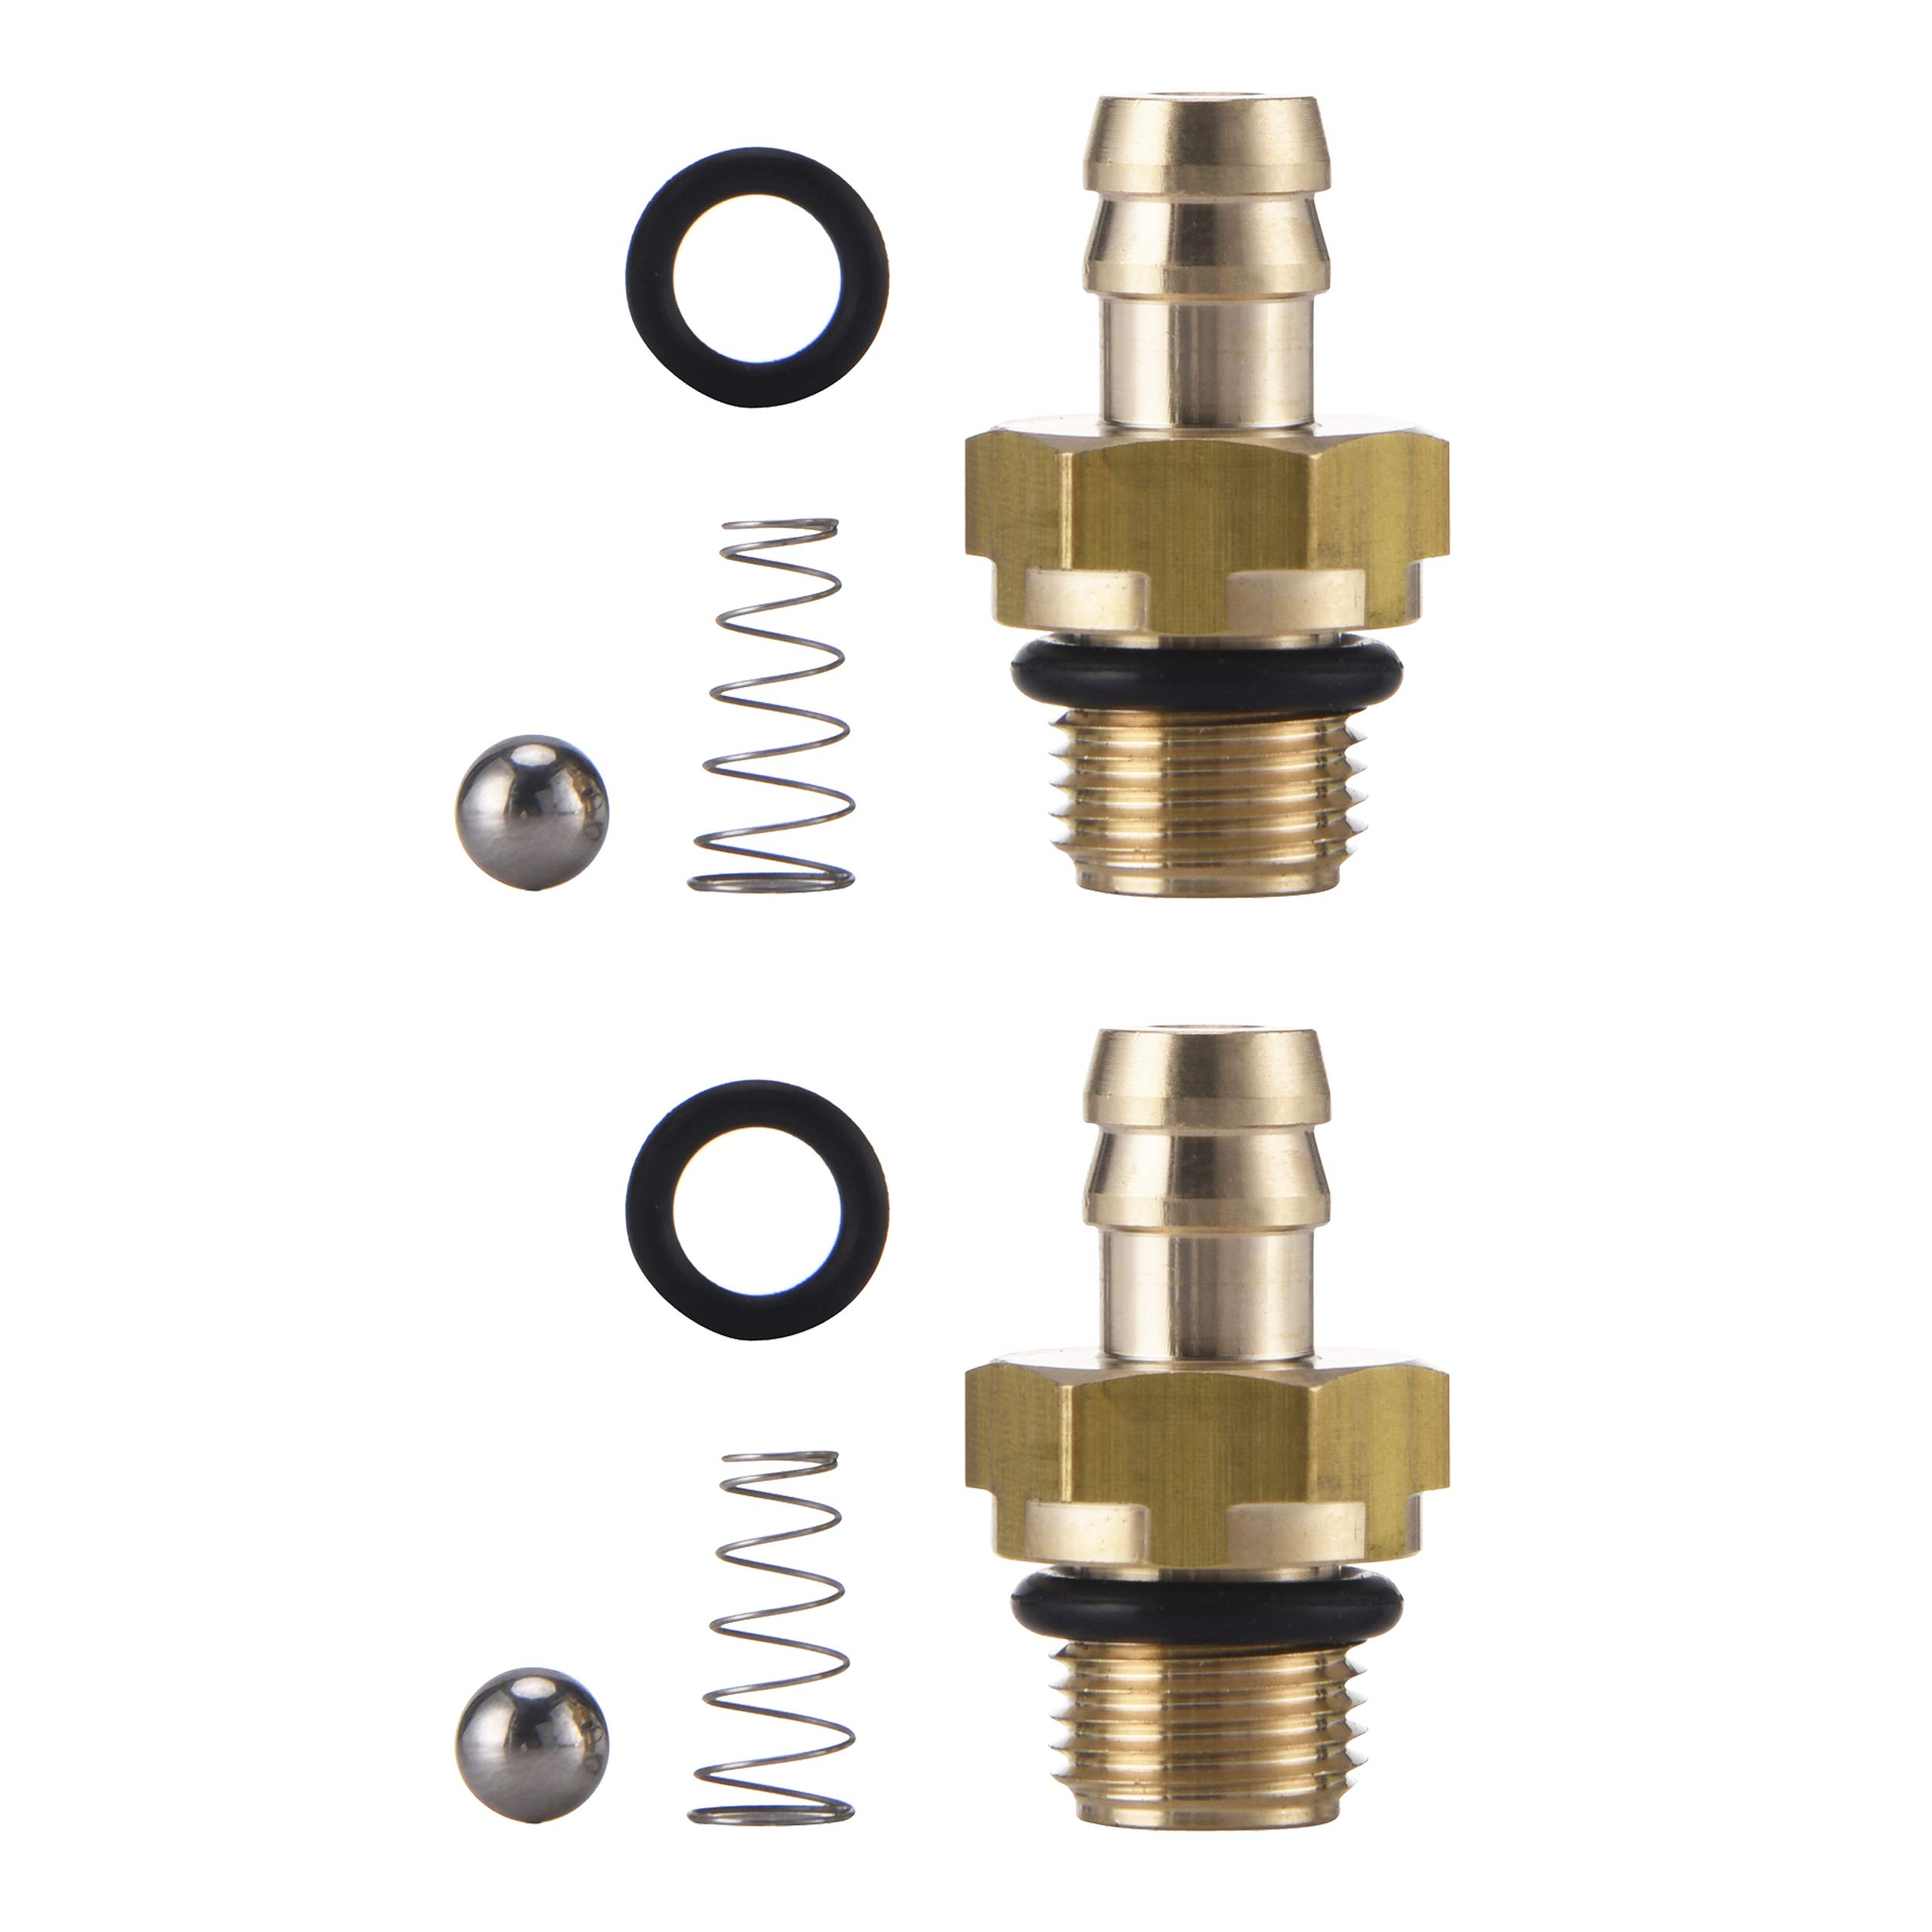 Tool Daily Compatible Chemical Injector Set for Pressure Washer, Replacement for Briggs and Stratton 190593GS 190635GS 203640GS